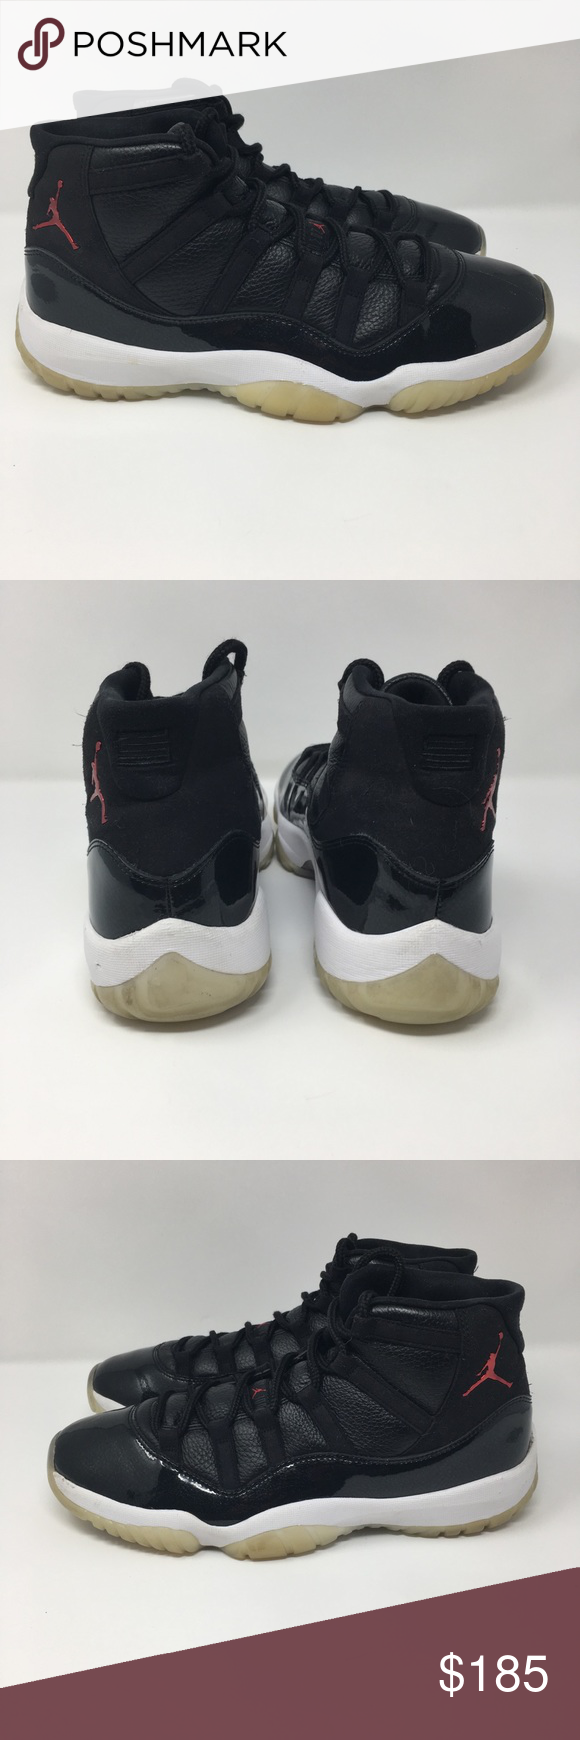 release date: 9dc23 a9f7b Nike Air Jordan XI 11 Retro 72-10 BLACK GYM RED Nike Air Jordan XI 11 Retro  72-10 BLACK GYM RED WHITE GREY BRED 378037-002 11.5 Preowned Scratch on  right ...